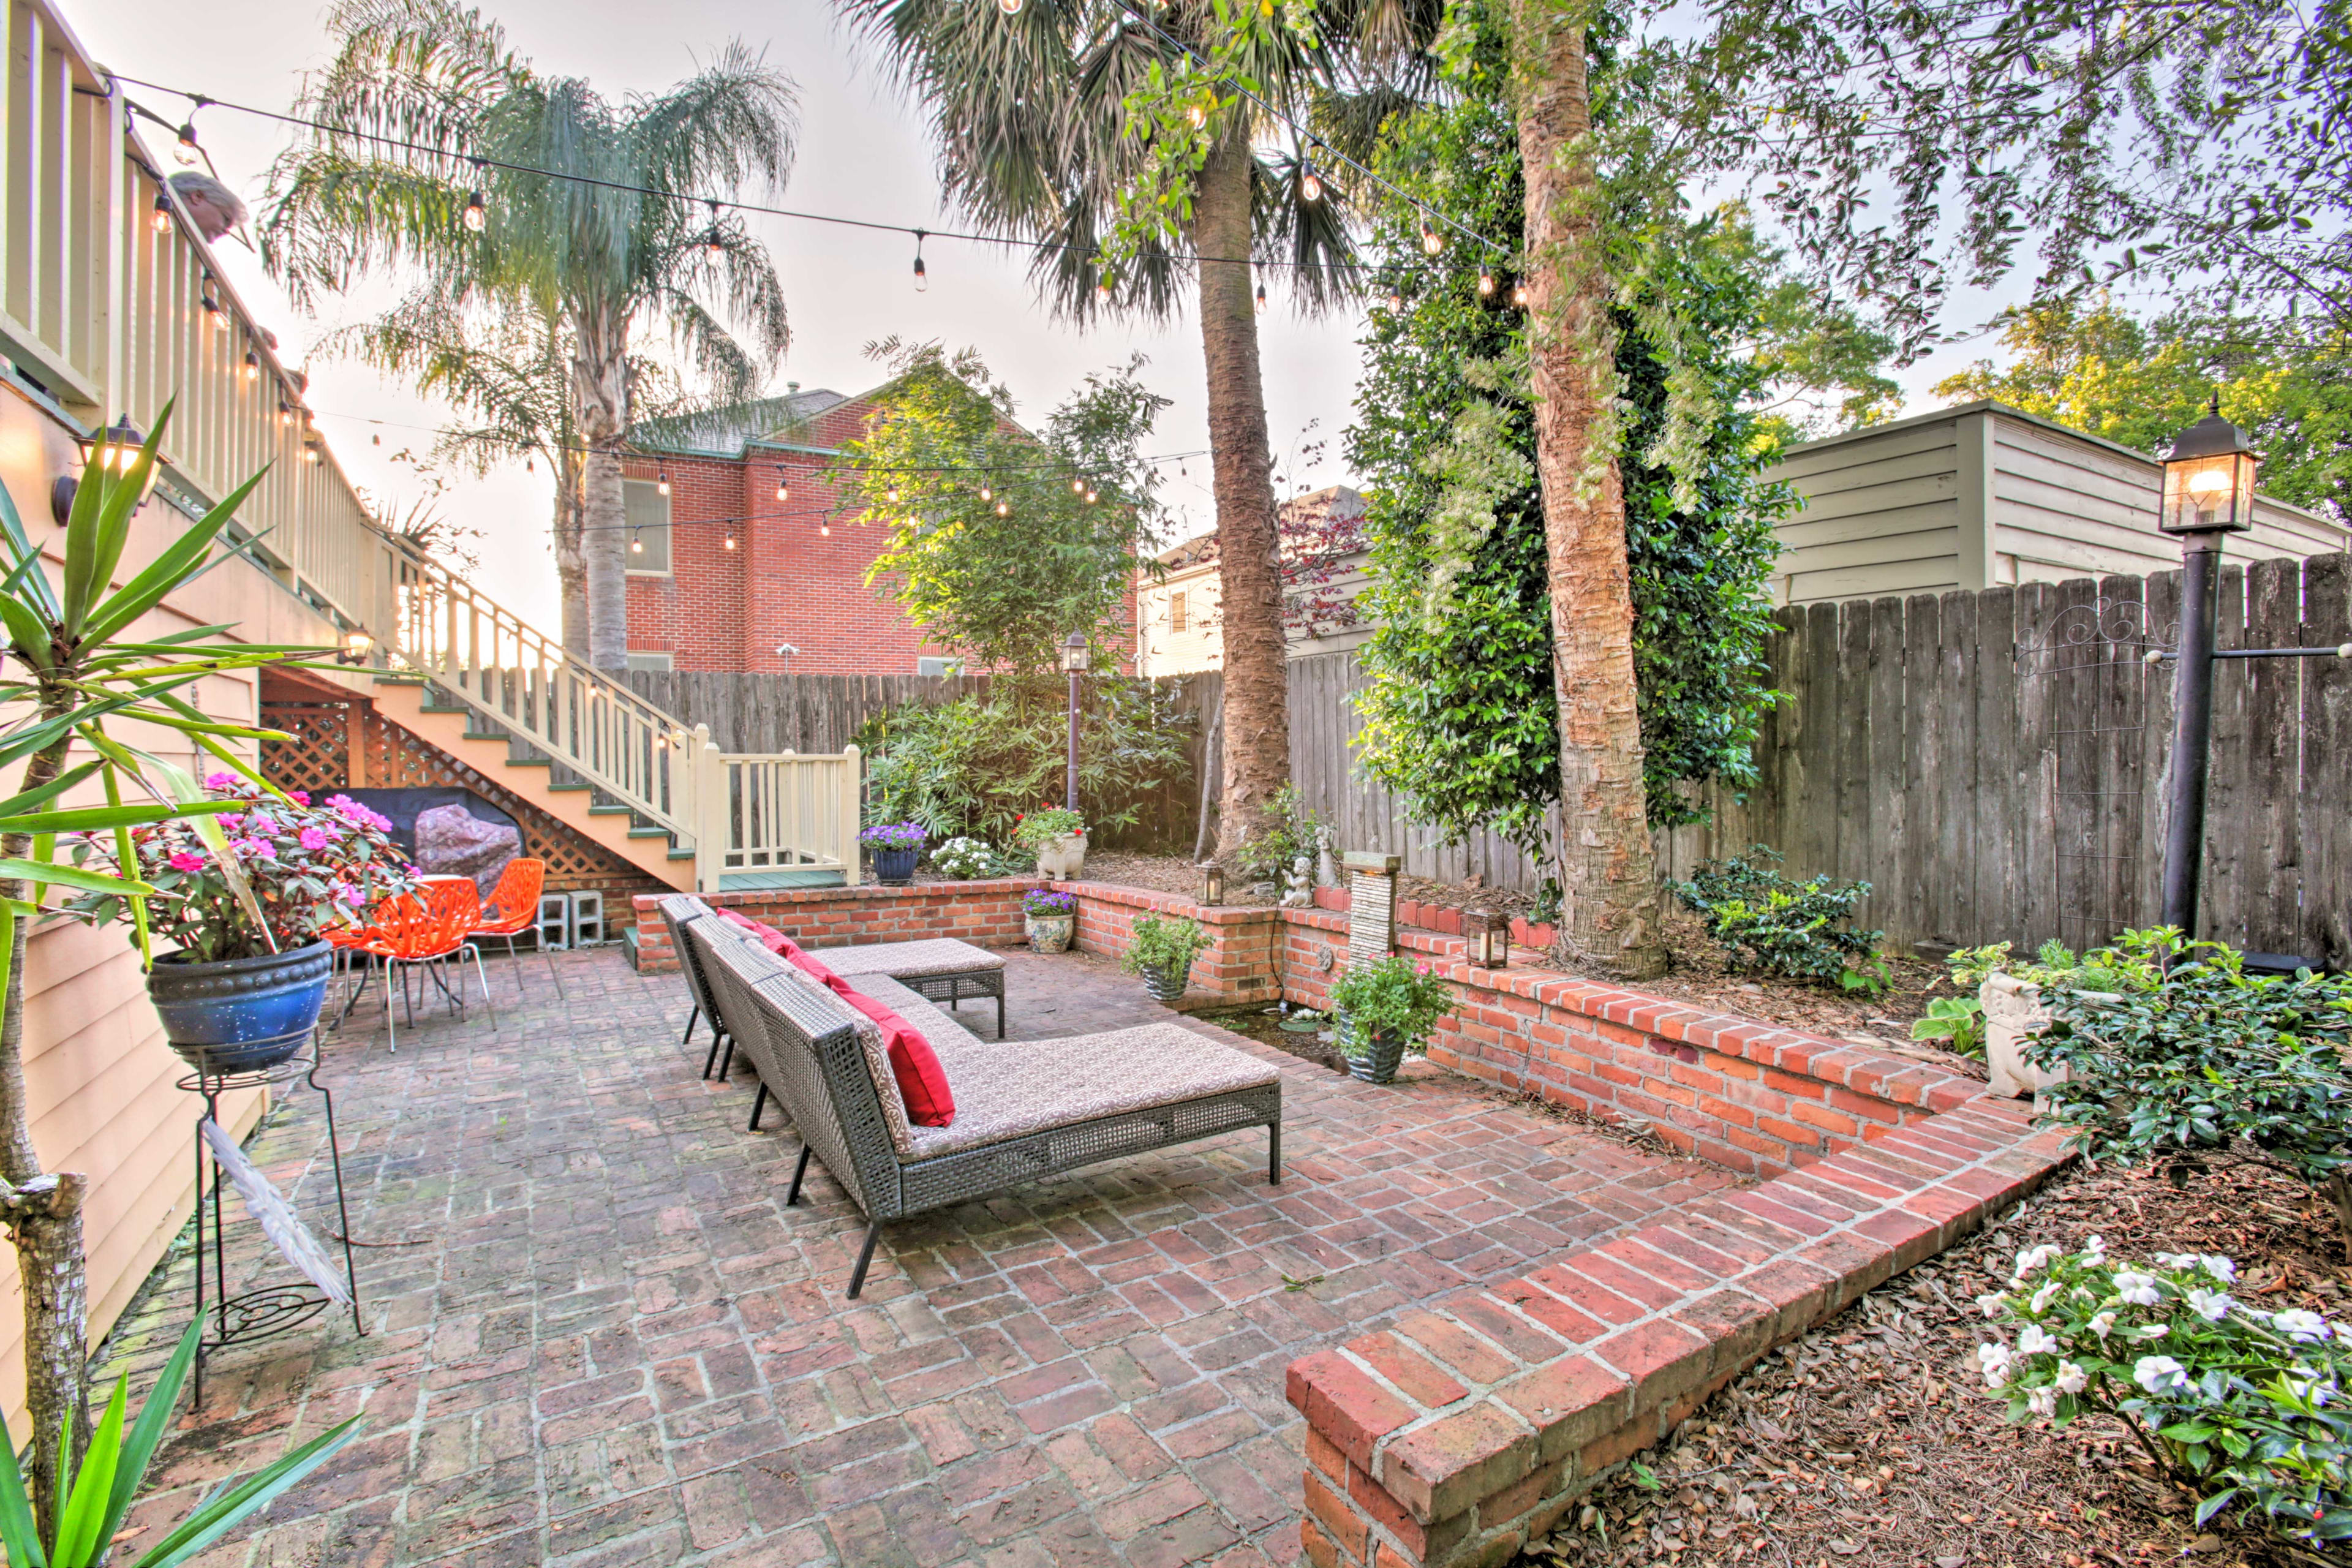 This spacious NOLA home base offers a lush garden with a waterfall!